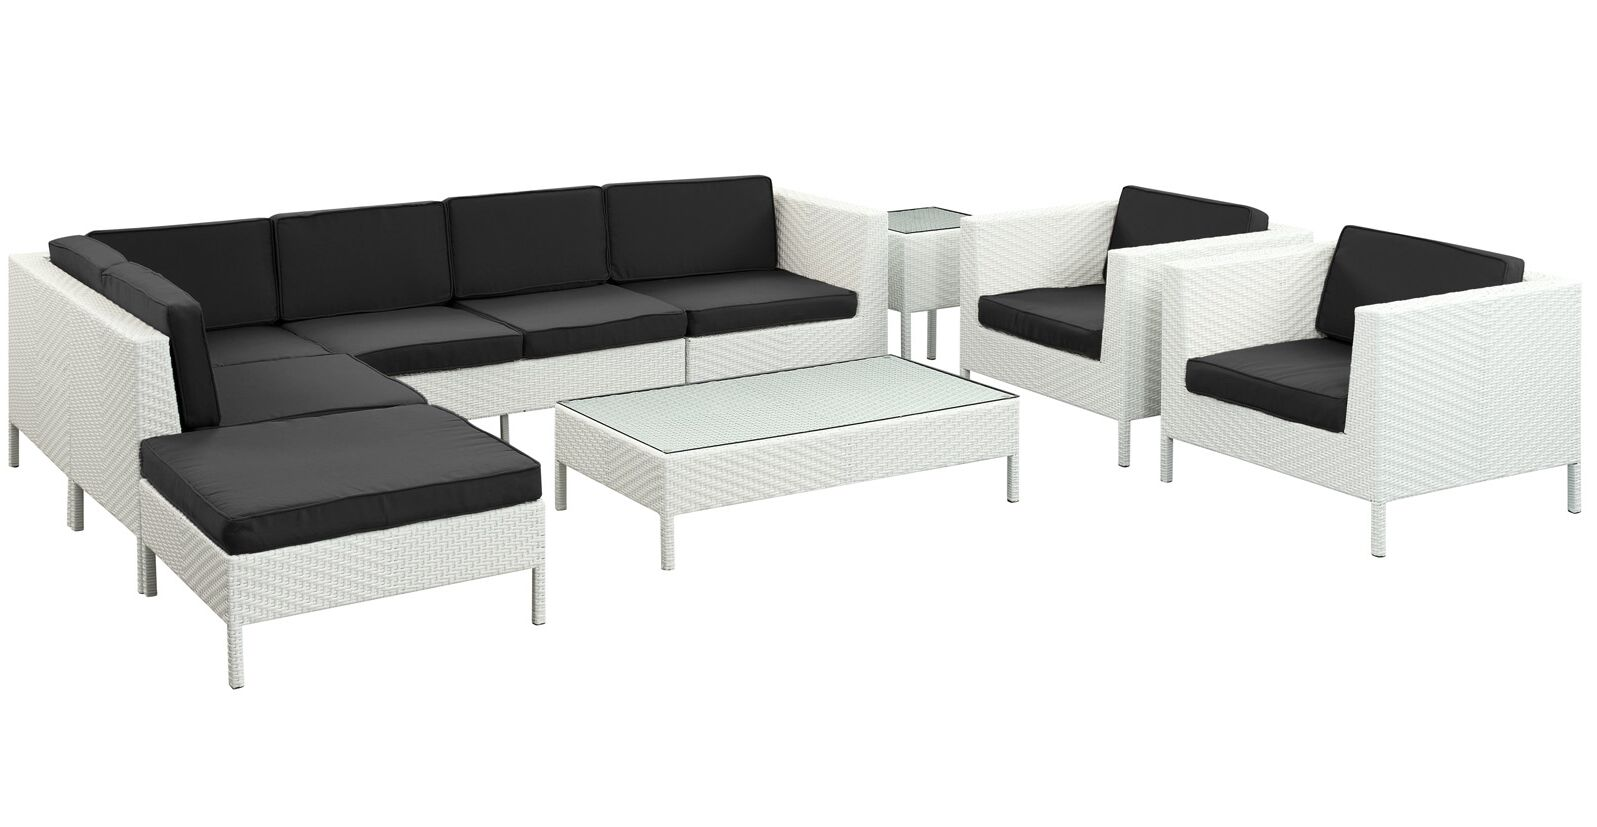 Alrai 9 Piece Rattan Sectional Set with Cushions Fabric: Black, Color: White